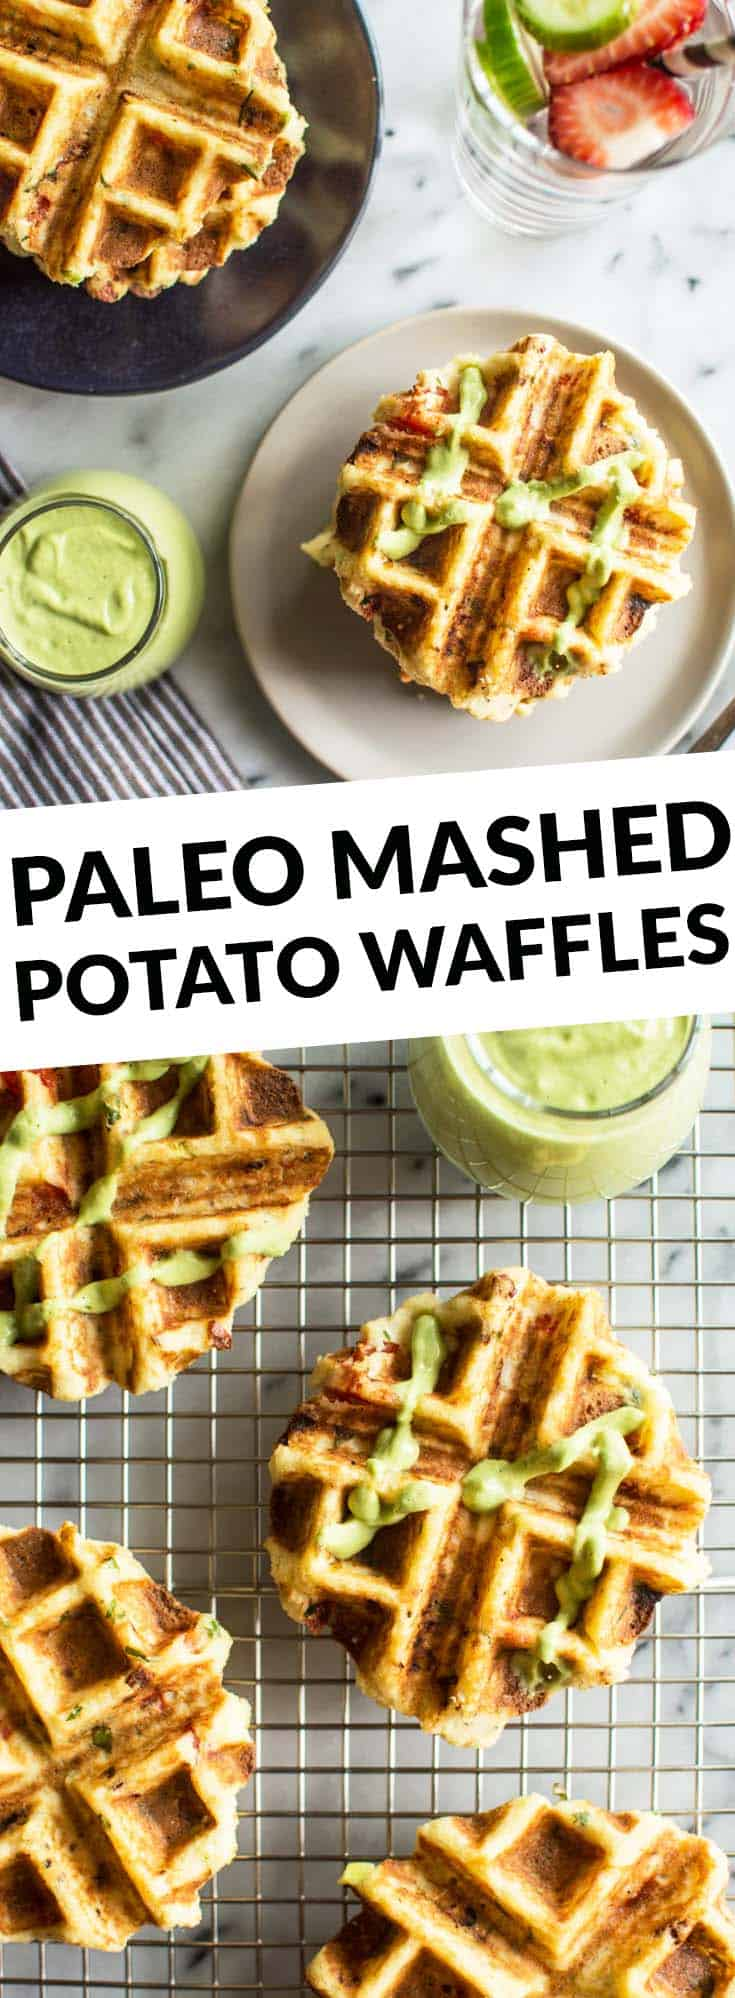 Mashed Potato Waffles - they're packed with flavor and paleo friendly! Perfect for breakfast! by @healthynibs